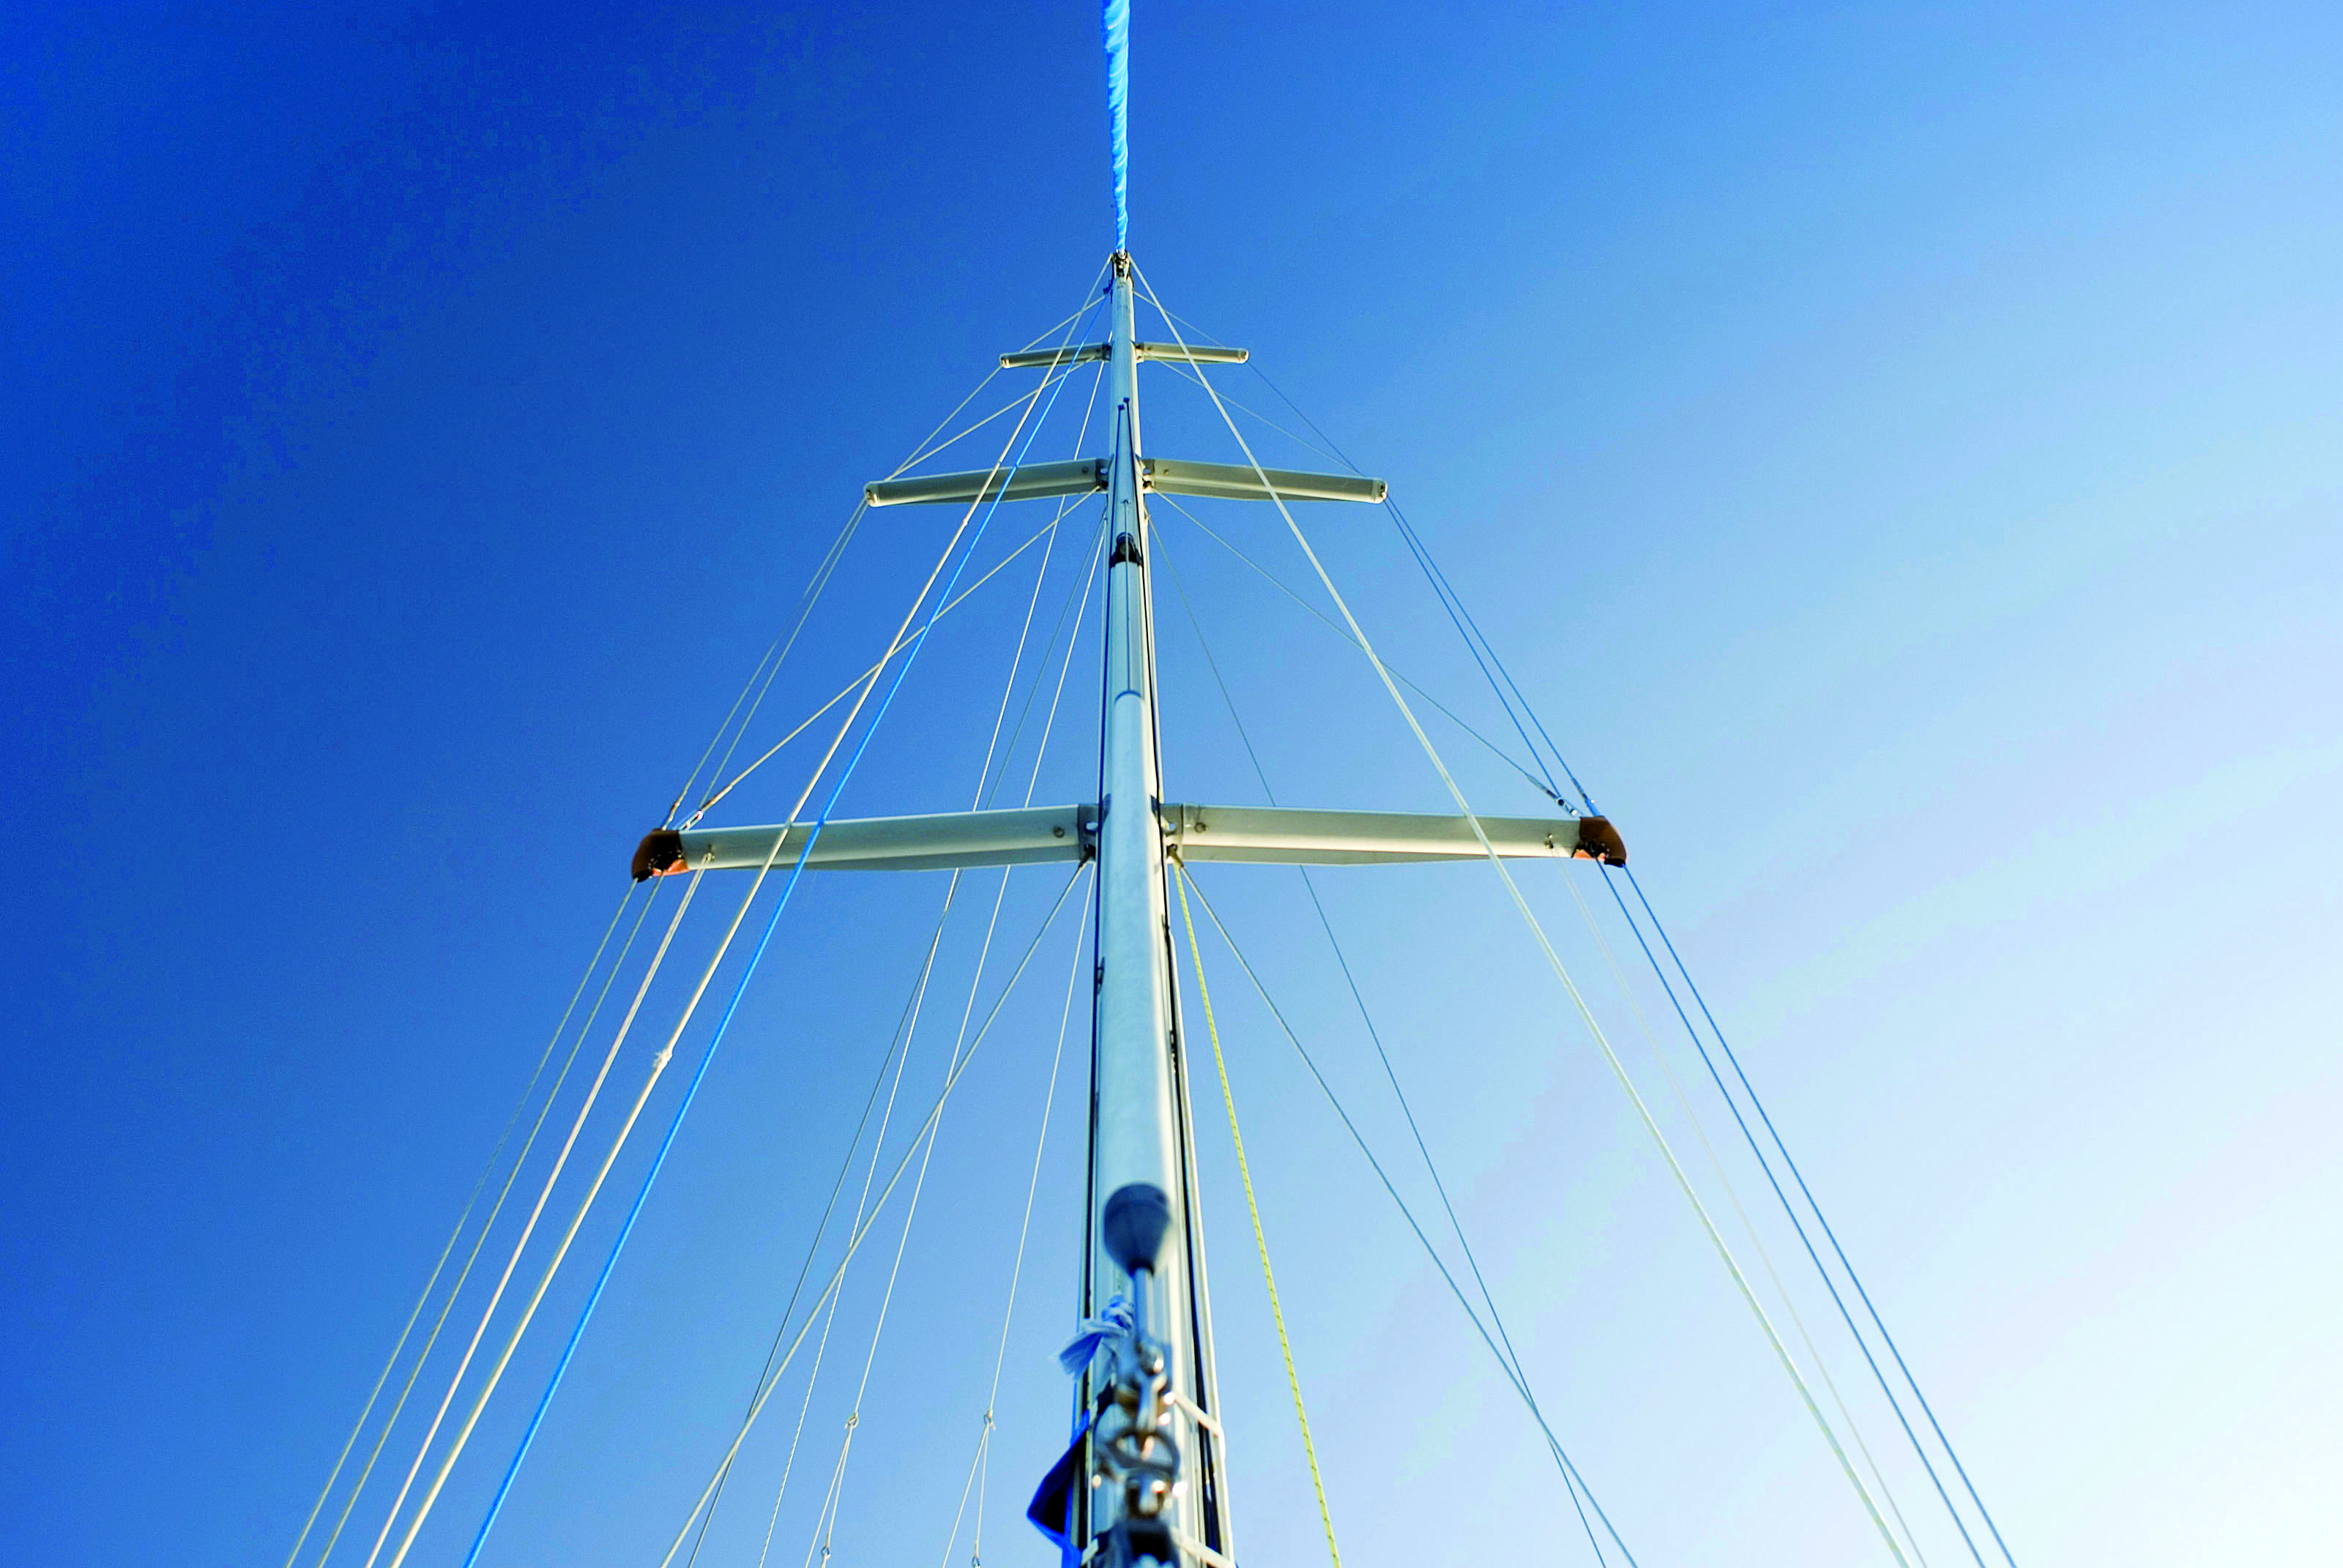 Boat mast and rigging